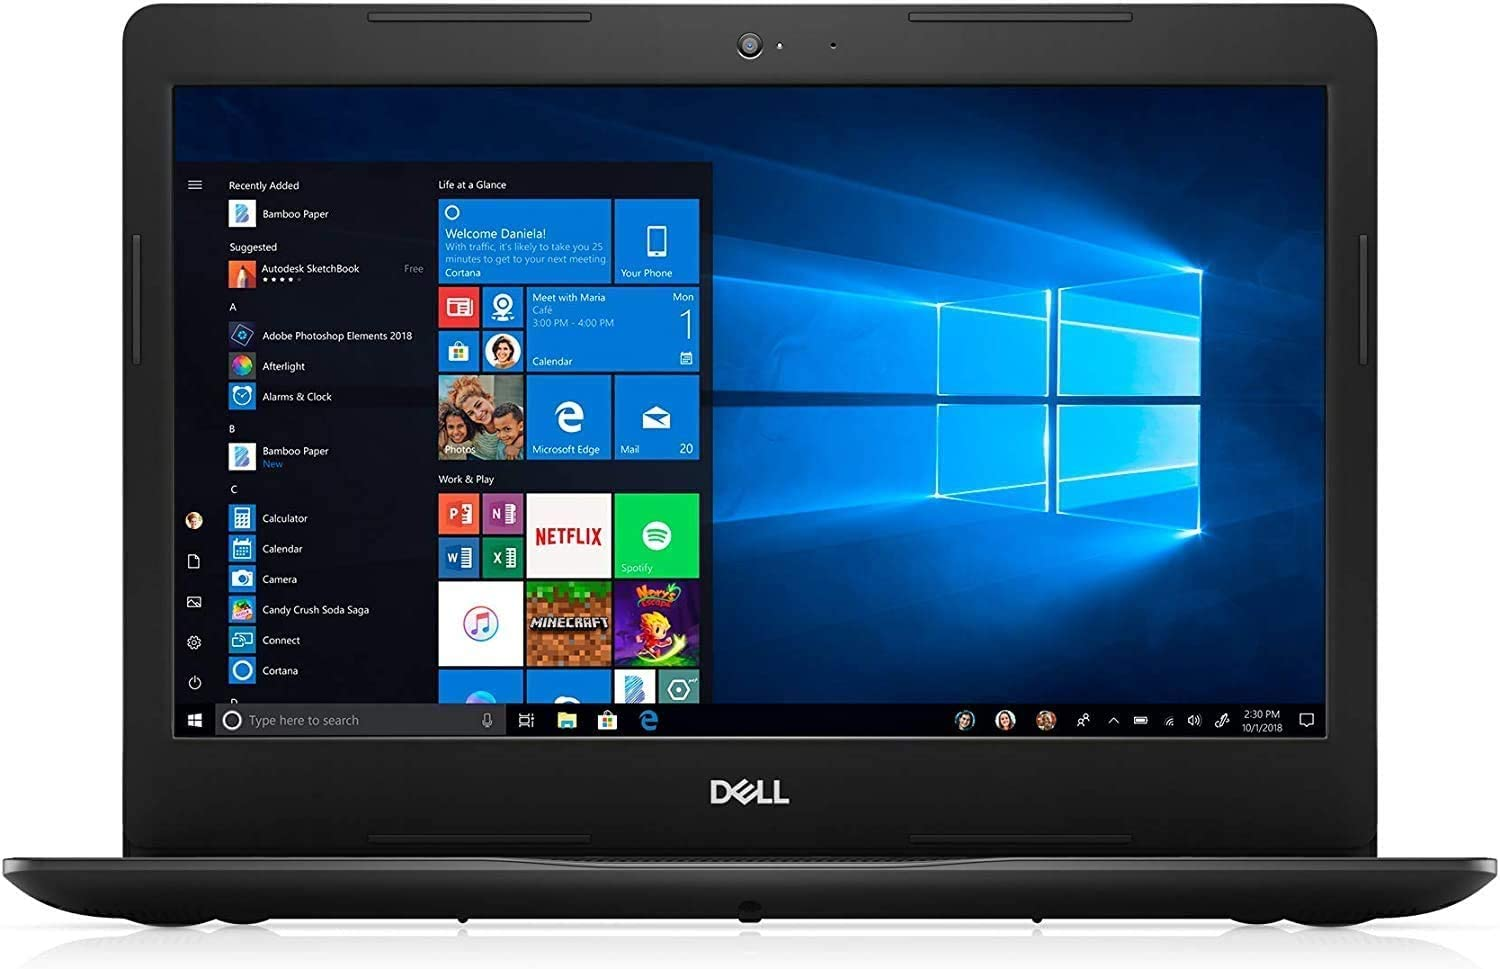 "2020 Newest DELL insprion 15 3000 PC Laptop, 15.6"" HD Anti-Glare Non-Touch Display, Intel 2-Core 4205U Processor, 8GB RAM, 128GB PCIe NVMe SSD, WiFi, Webcam, Oydisen HDMI, Bluetooth, Windows 10 S"